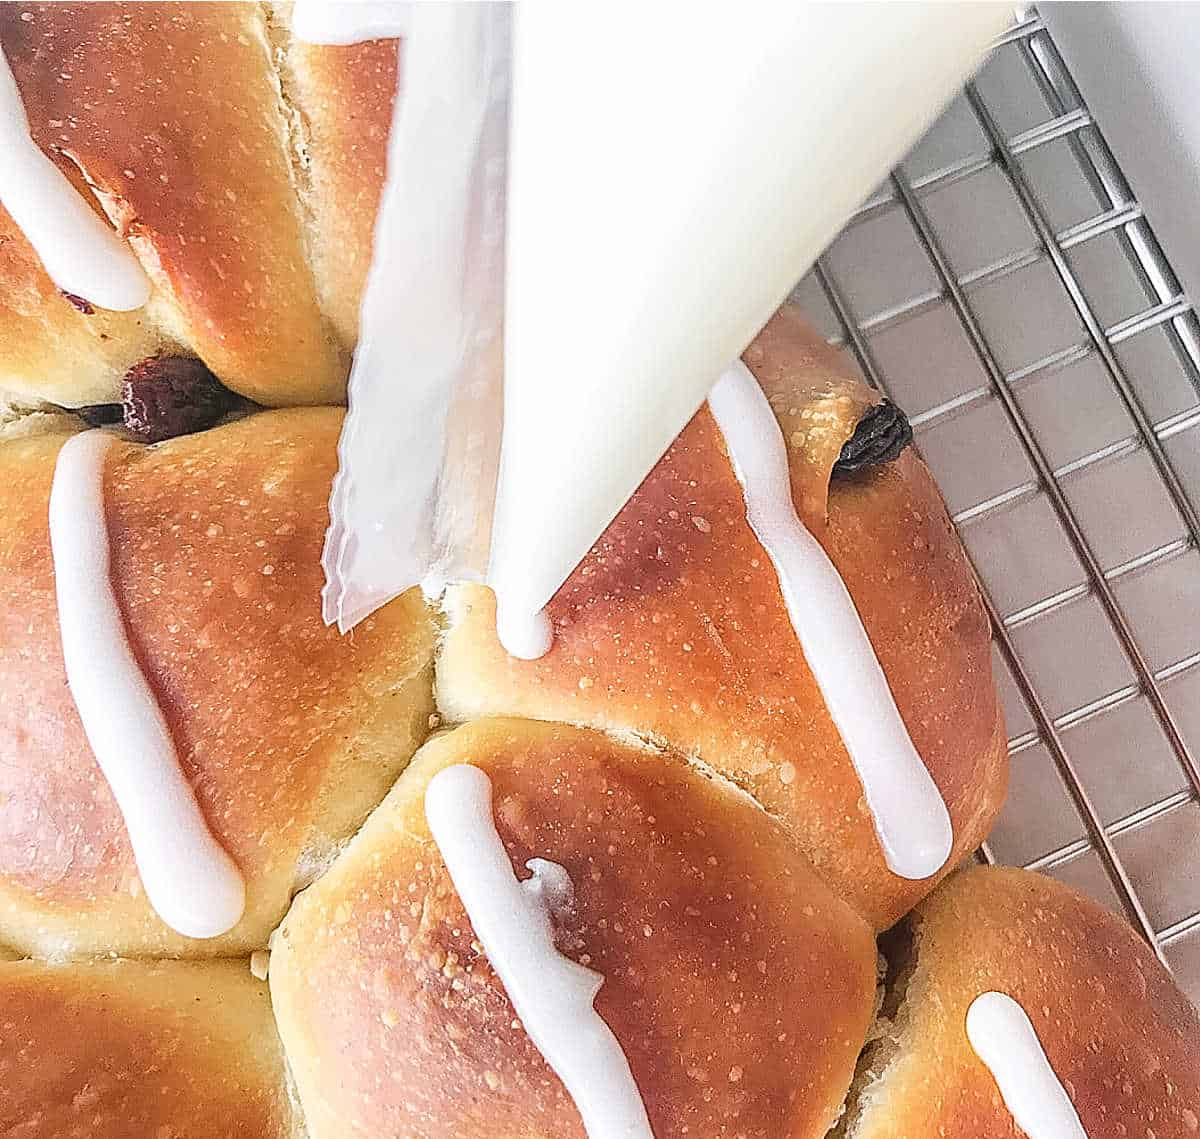 Piping white lines on baked small rolls